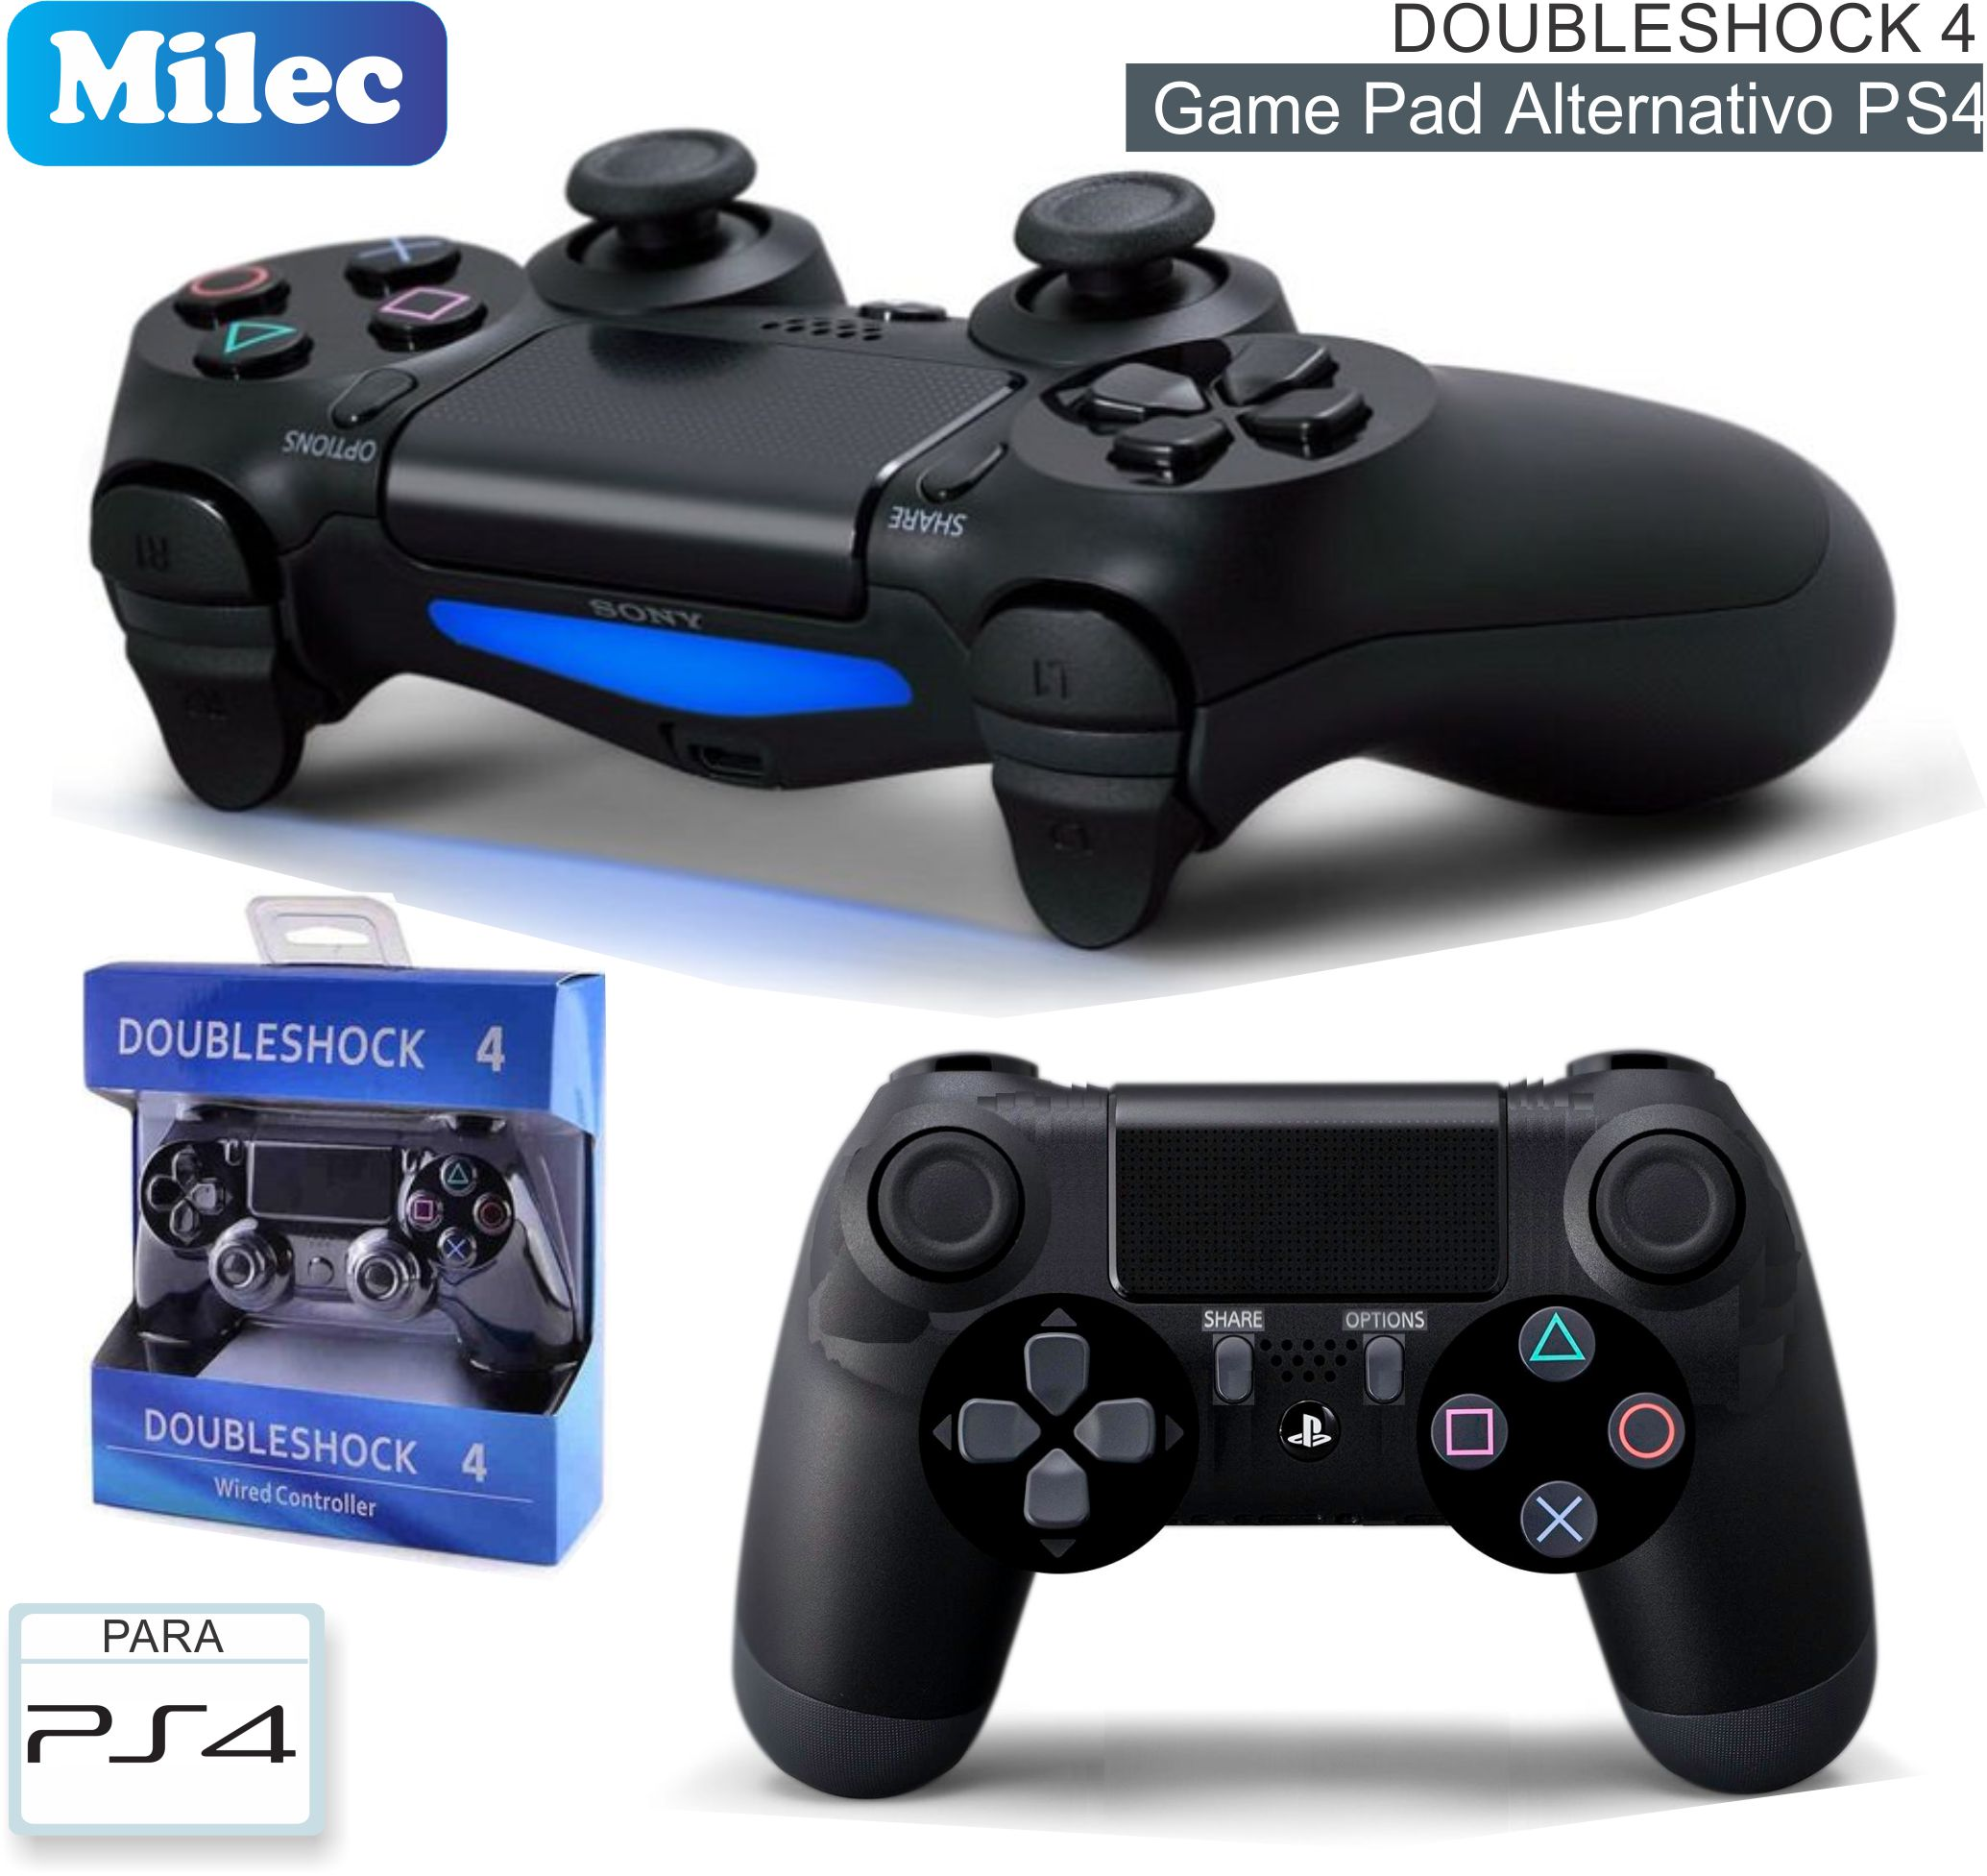 Game Pad Inalambrico MILEC Doubleshock 4 PS4